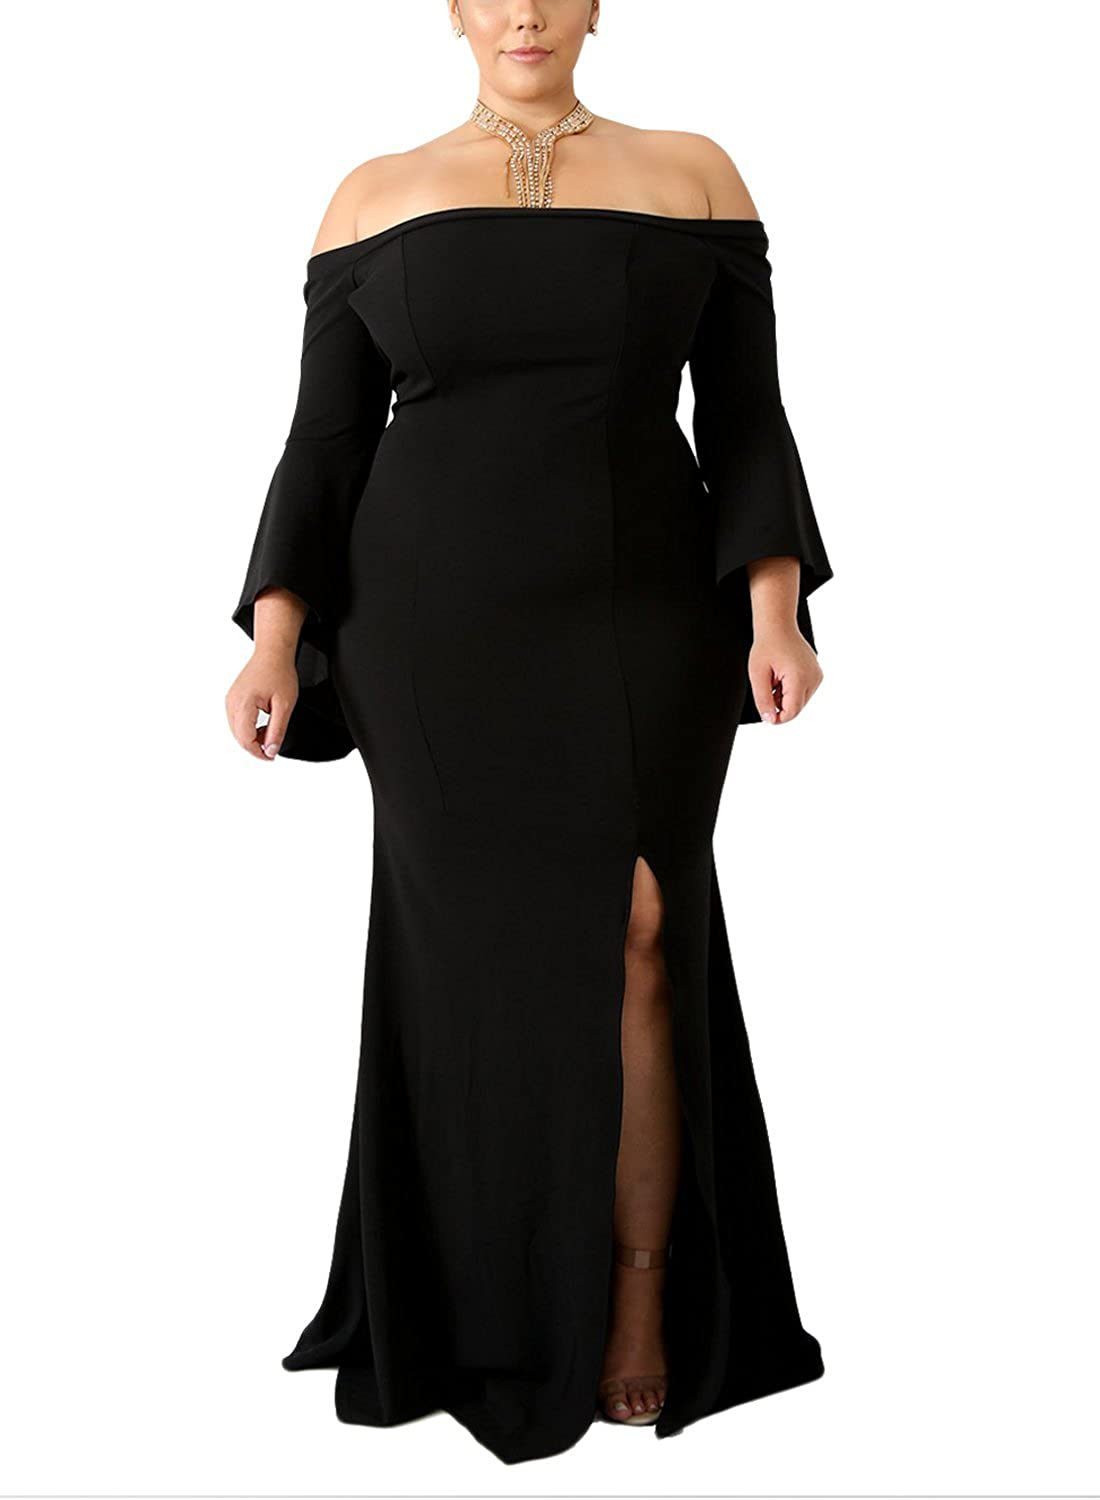 00fab3dd058 Sexy Design -- This Plus Size Long Evening Dress with side slit and sexy off  shoulder design will give you a elegent and sexy look.